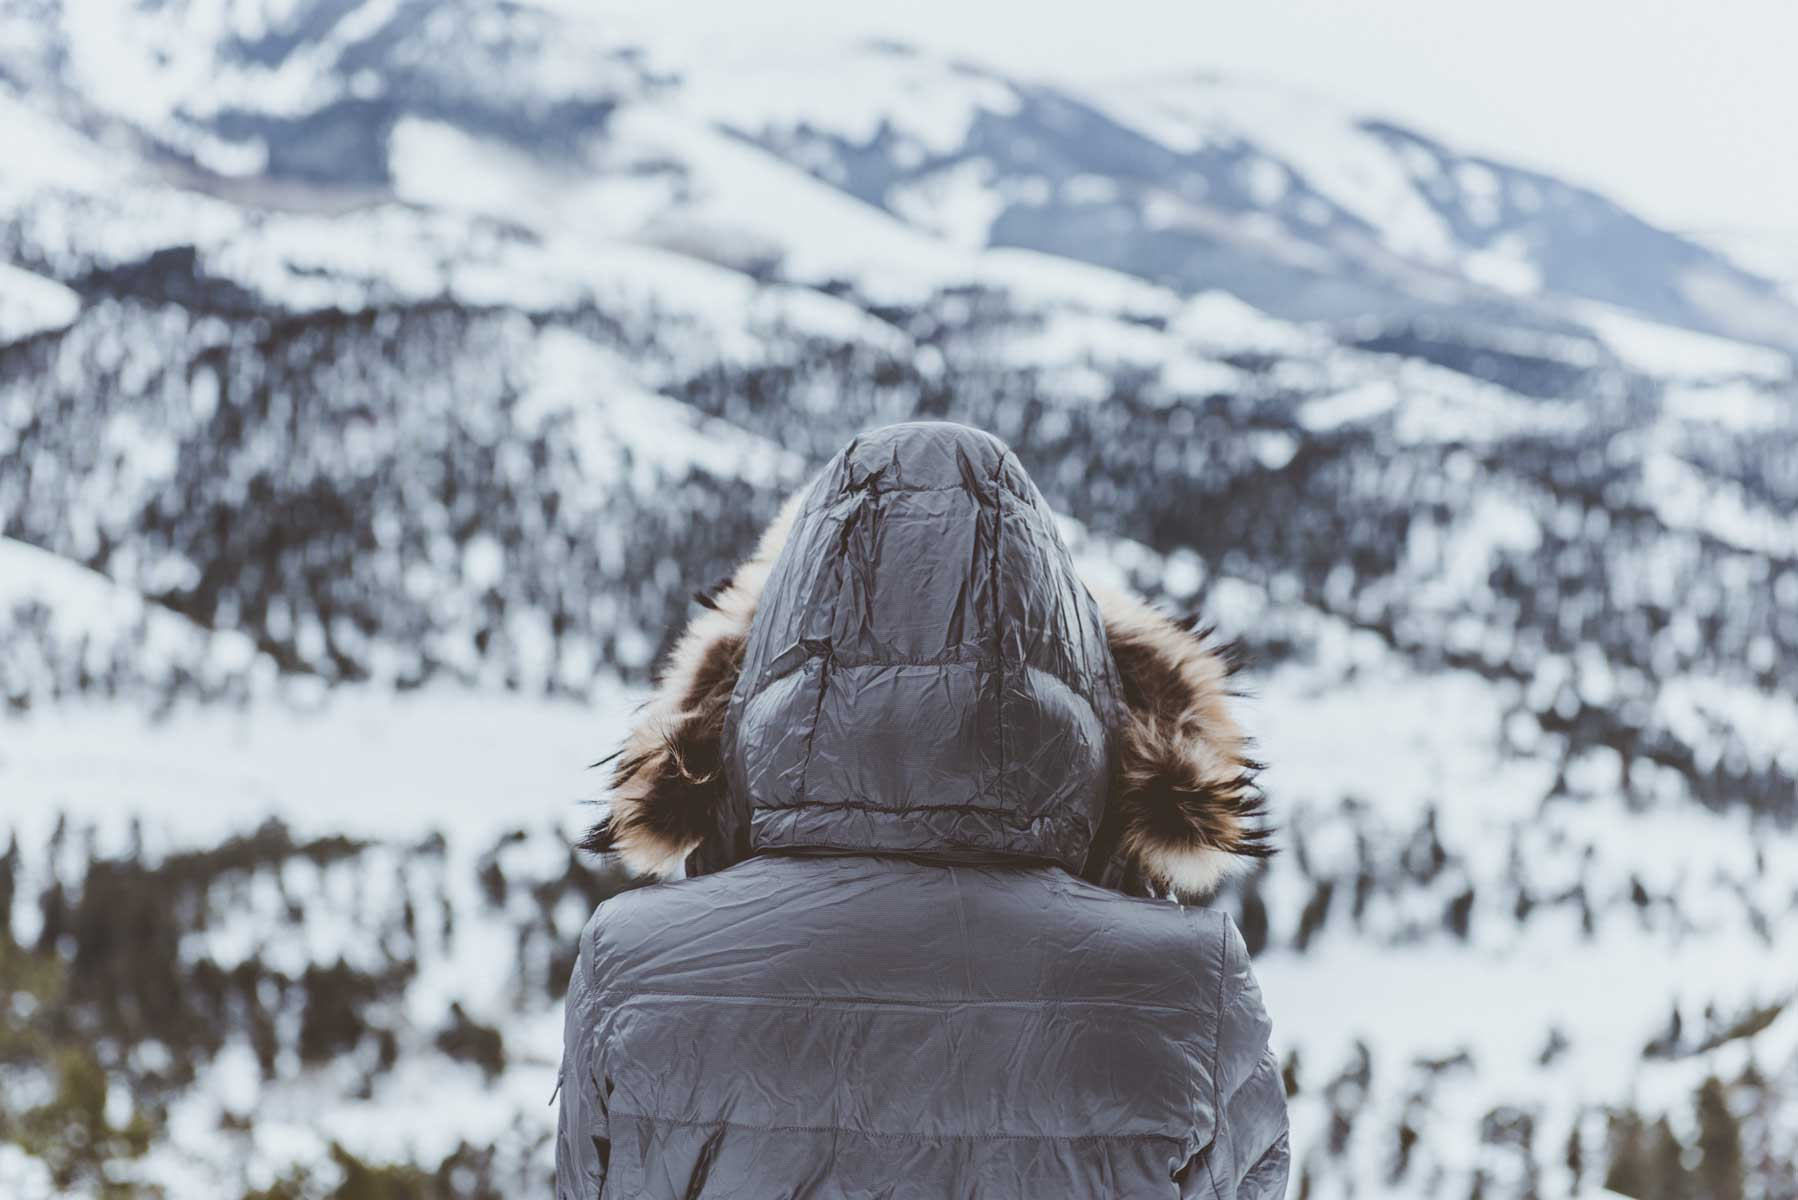 Hooded person near snow landscape